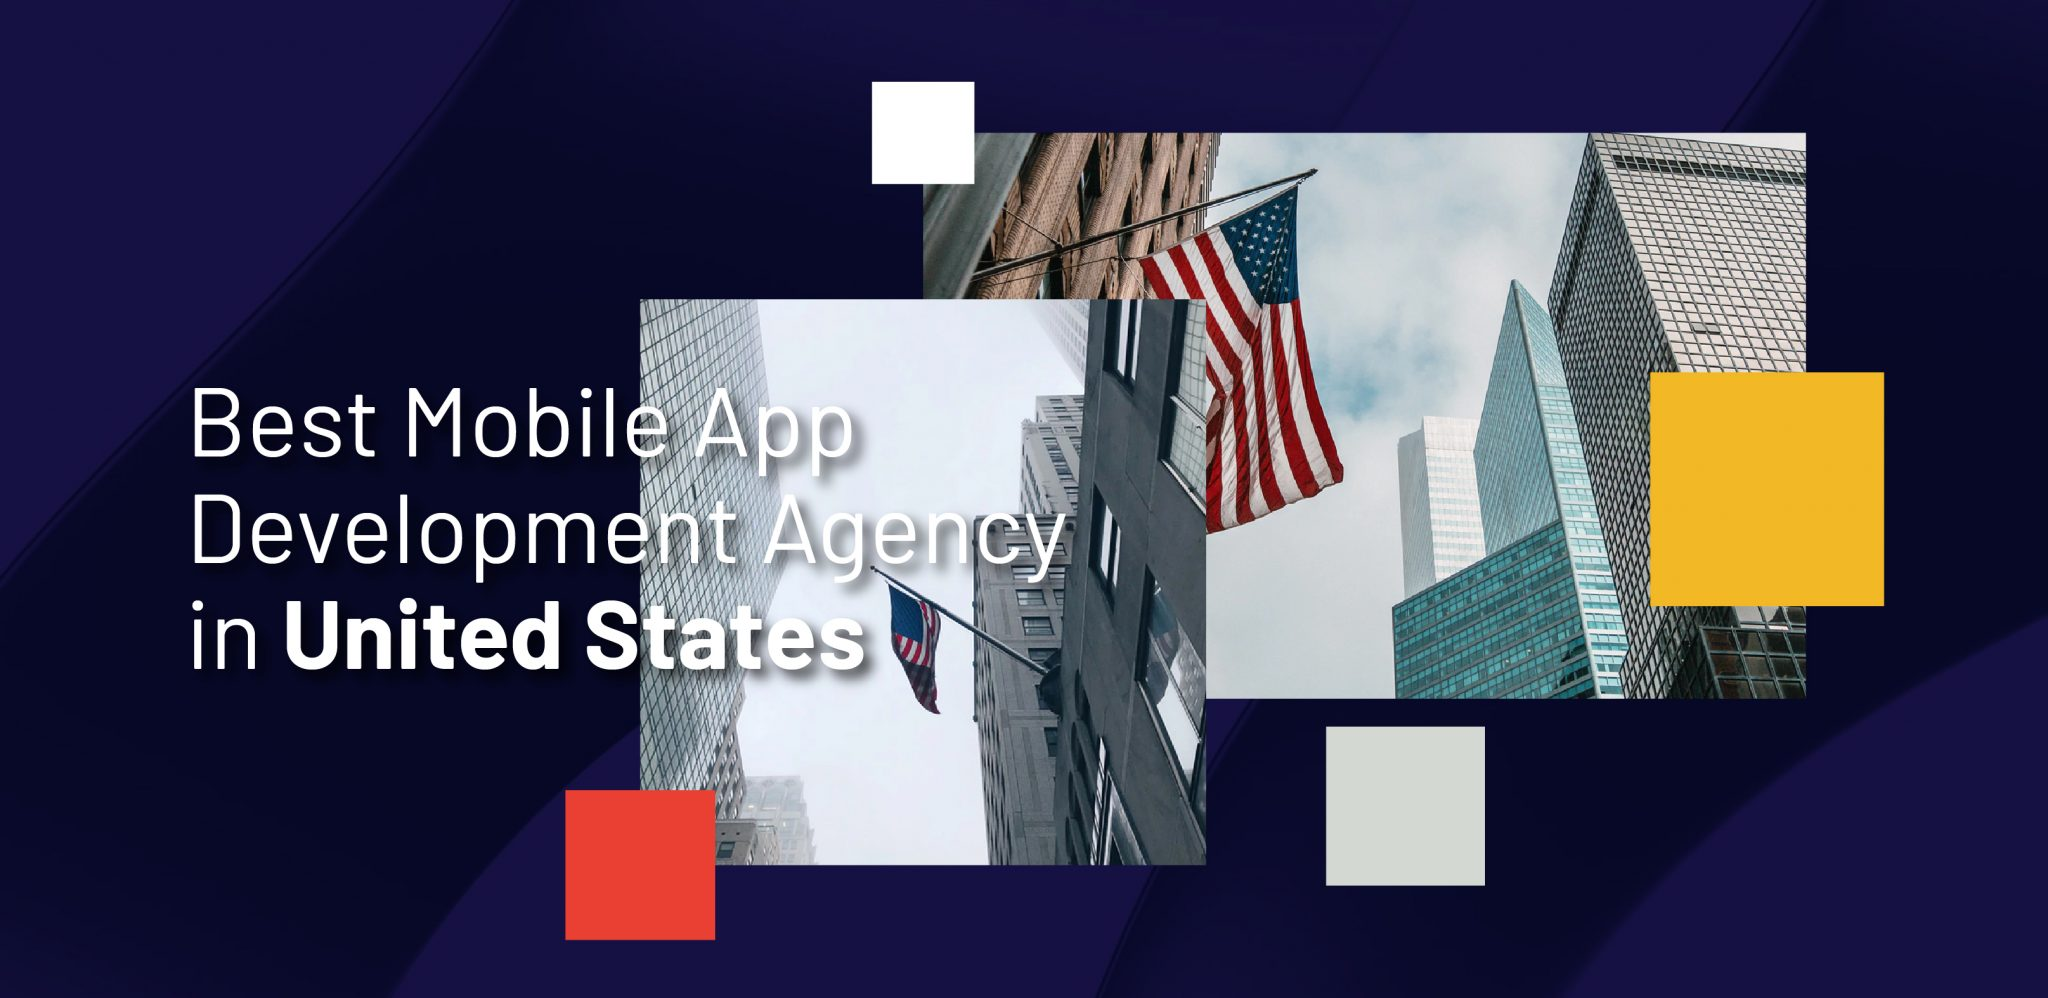 Best Mobile App Development Agency United States - WebClues Infotech